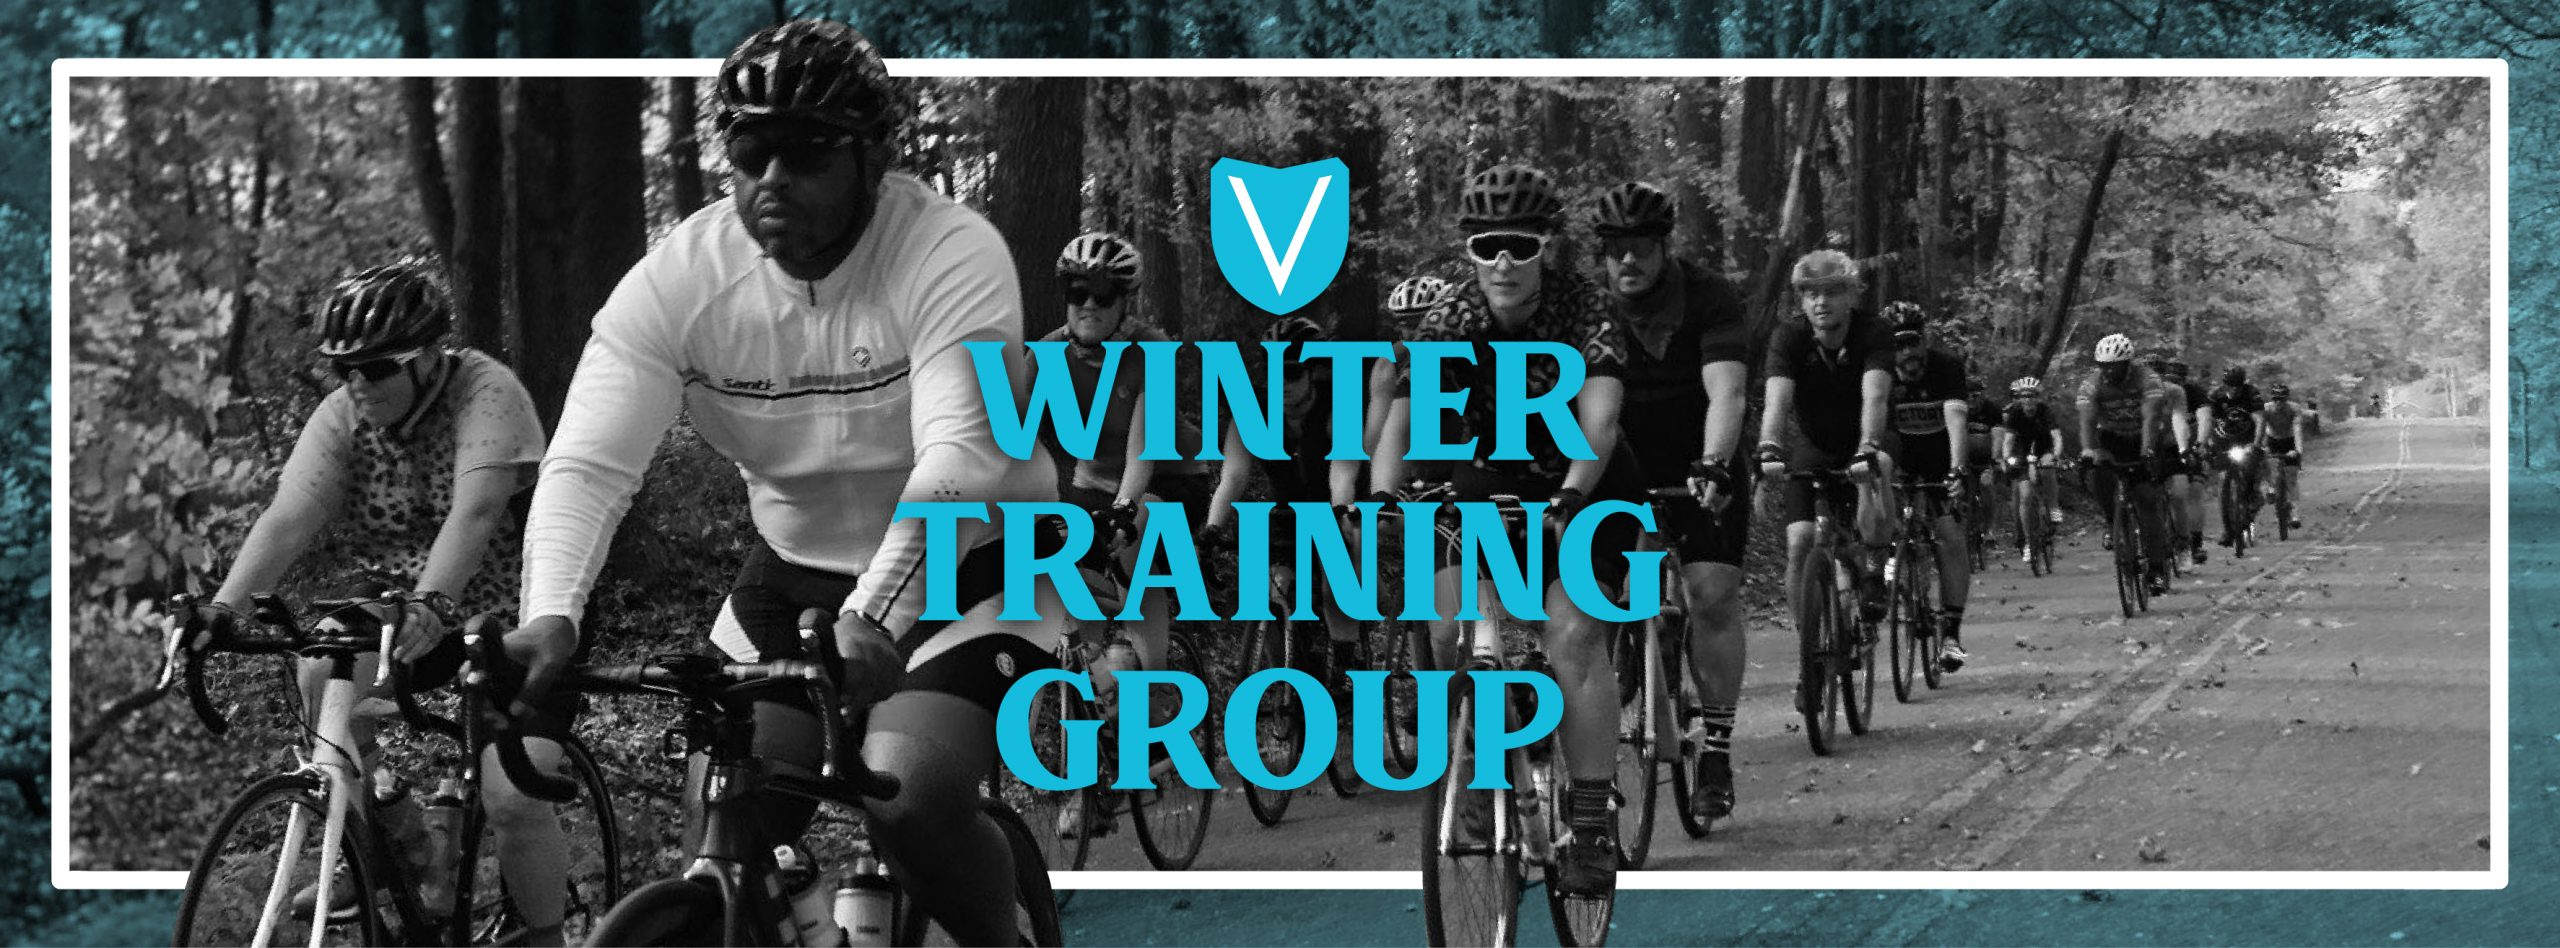 Winter Training Group banner - cyclists riding in black and white